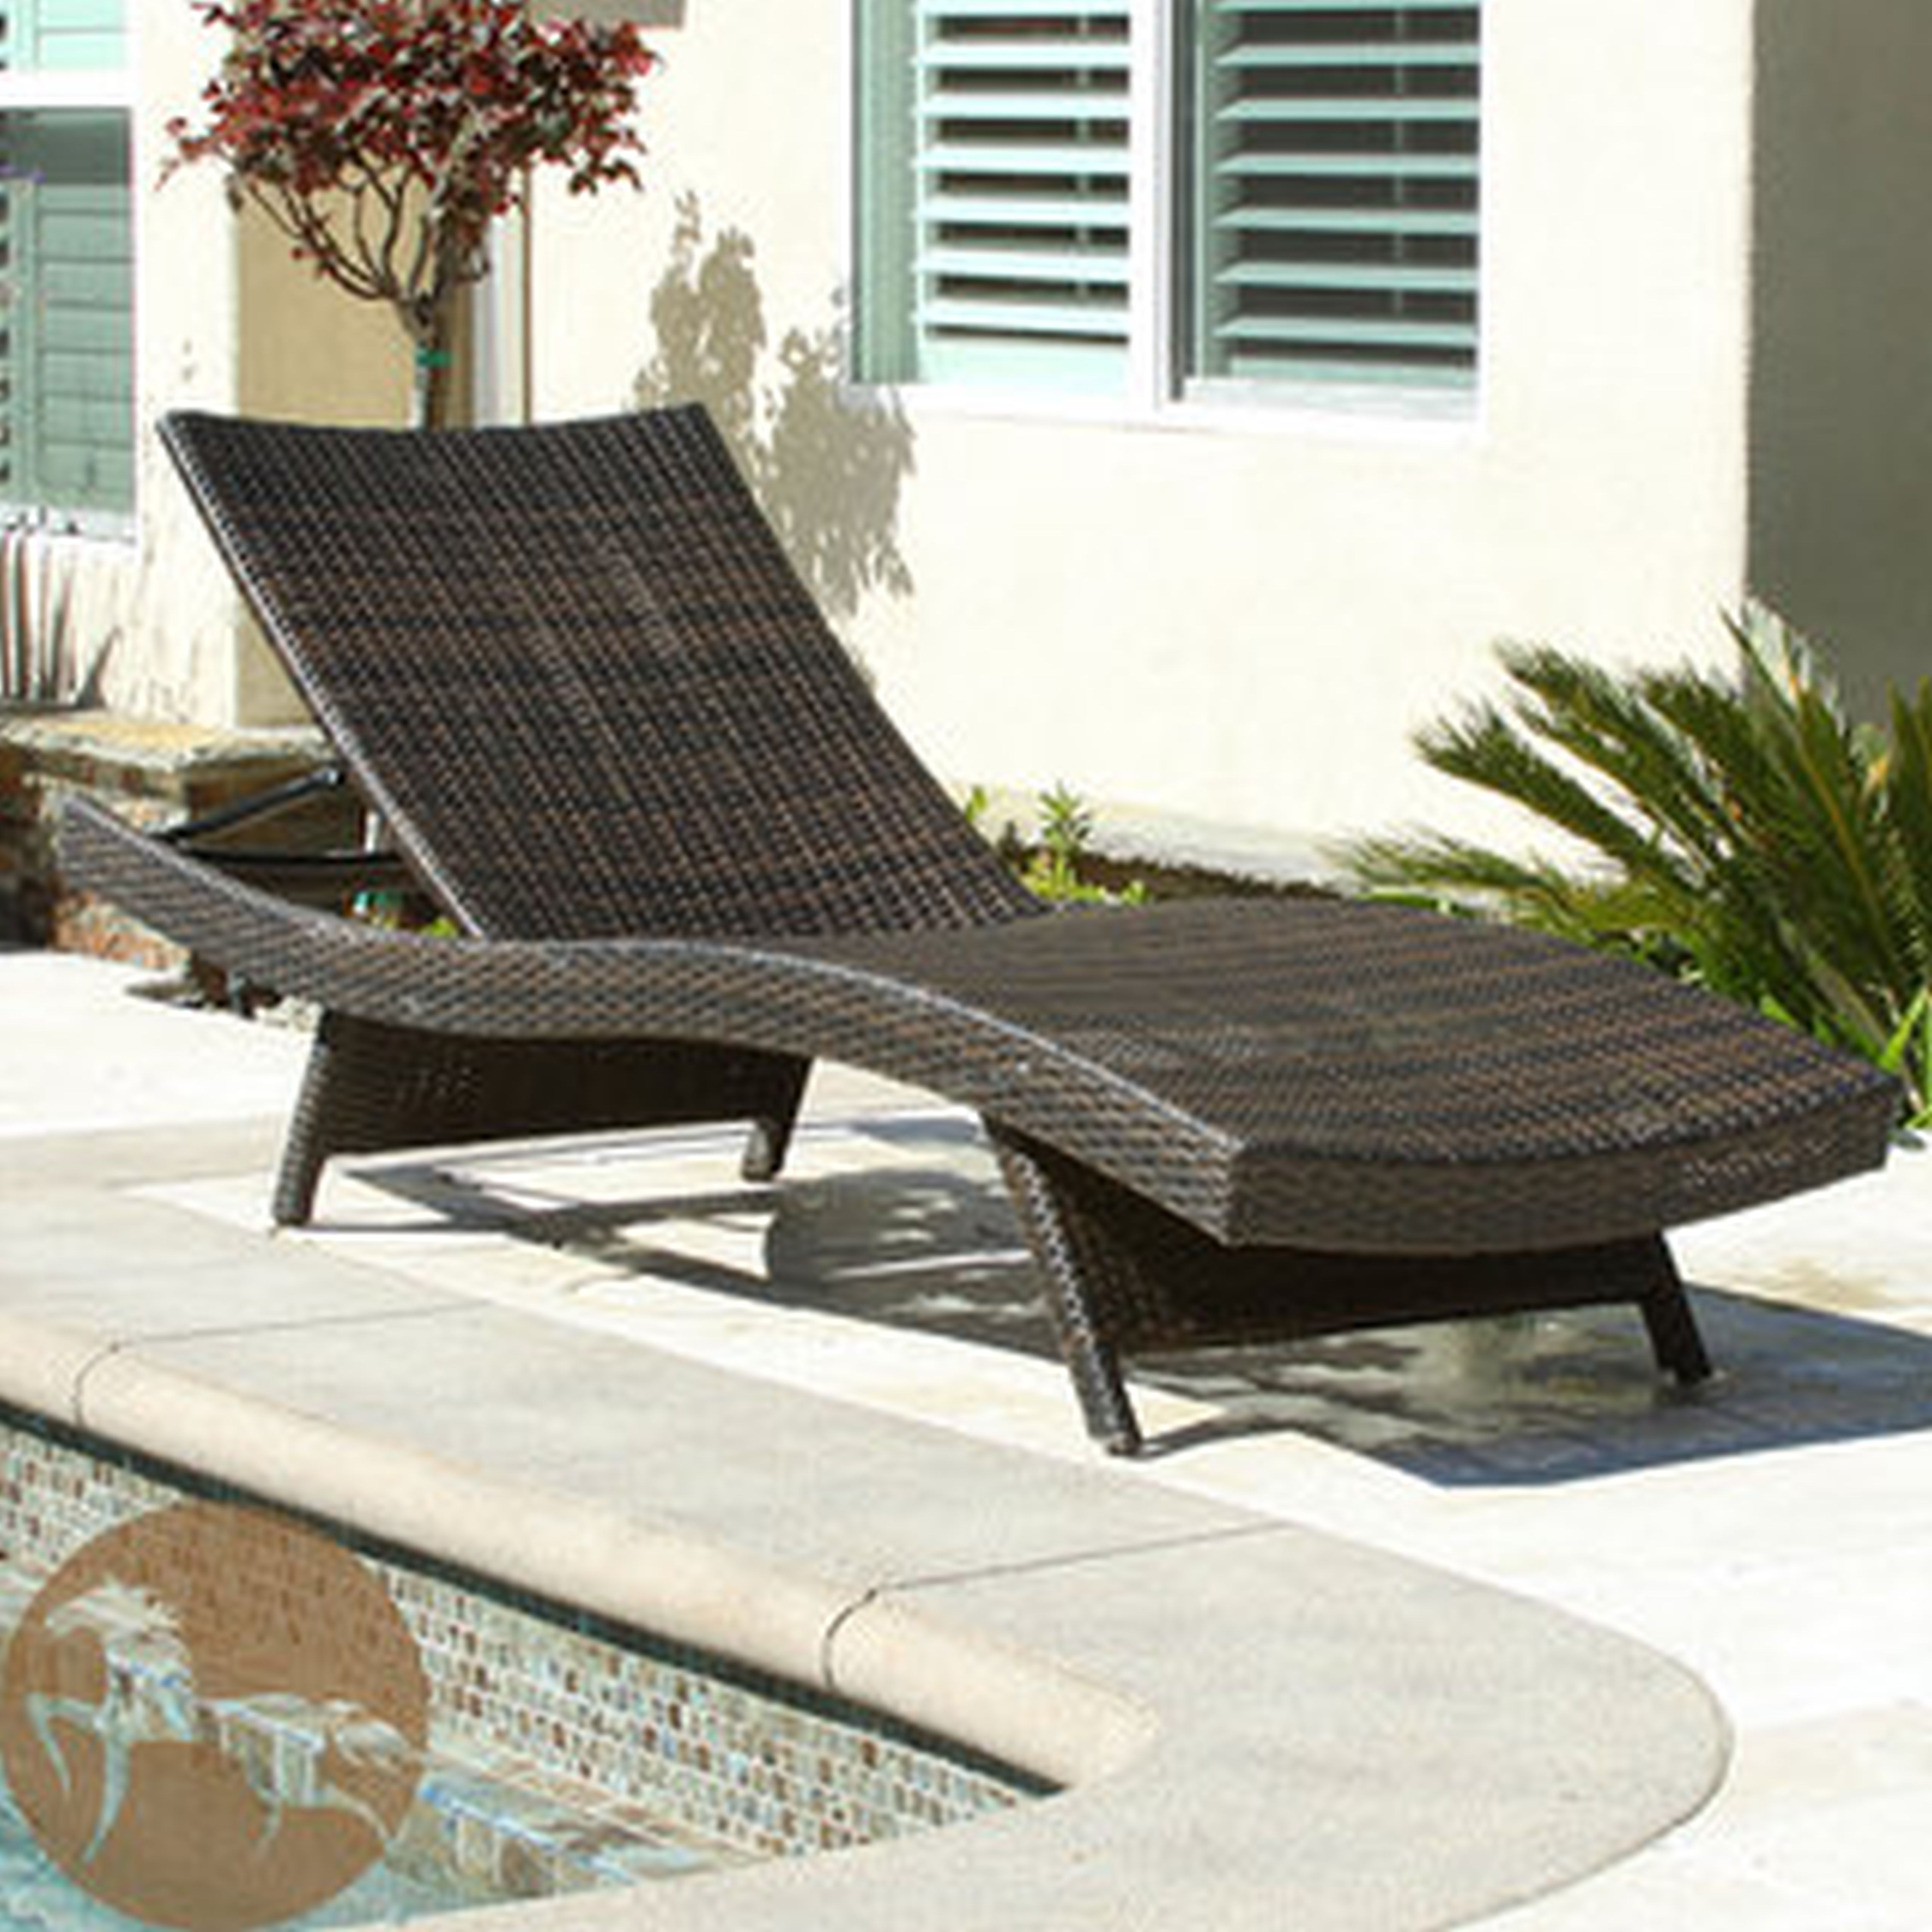 Walmart Outdoor Chaise Lounges In Newest Outdoor : Commercial Chaise Lounge Chairs Double Chaise Lounge (View 7 of 15)